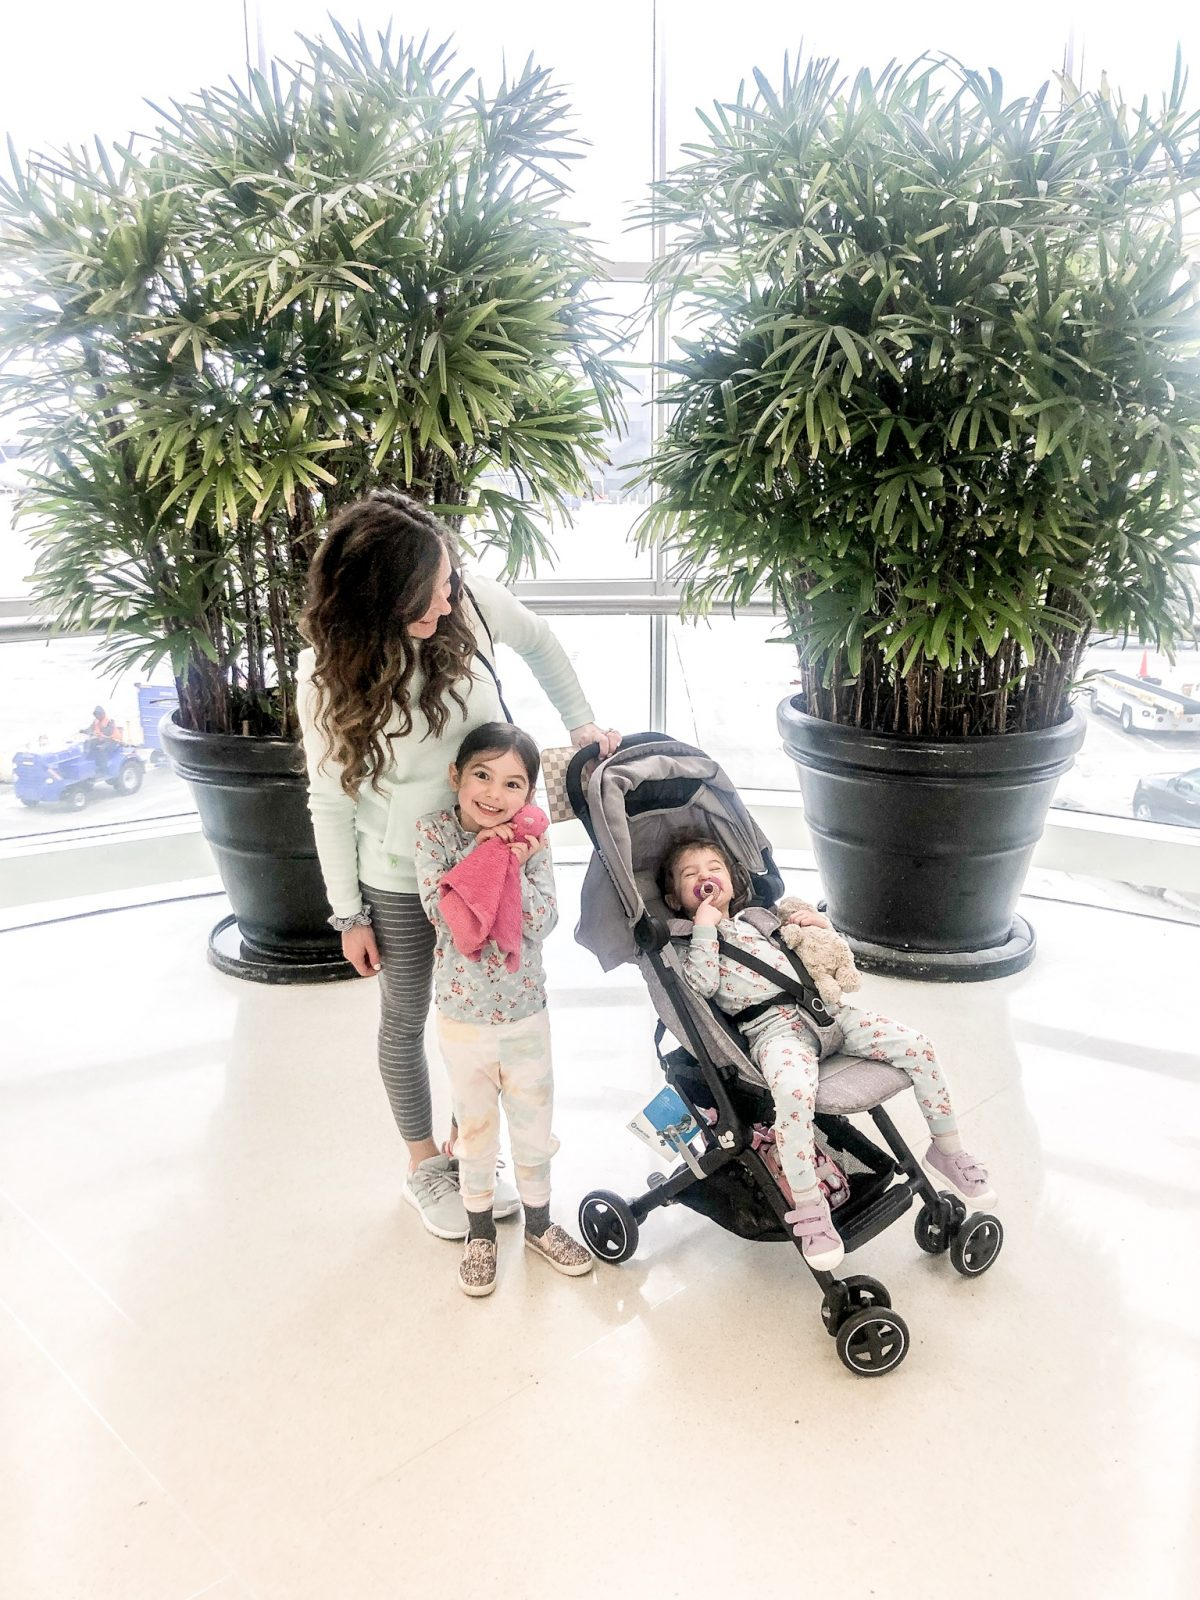 Mom alone at airport with toddlers